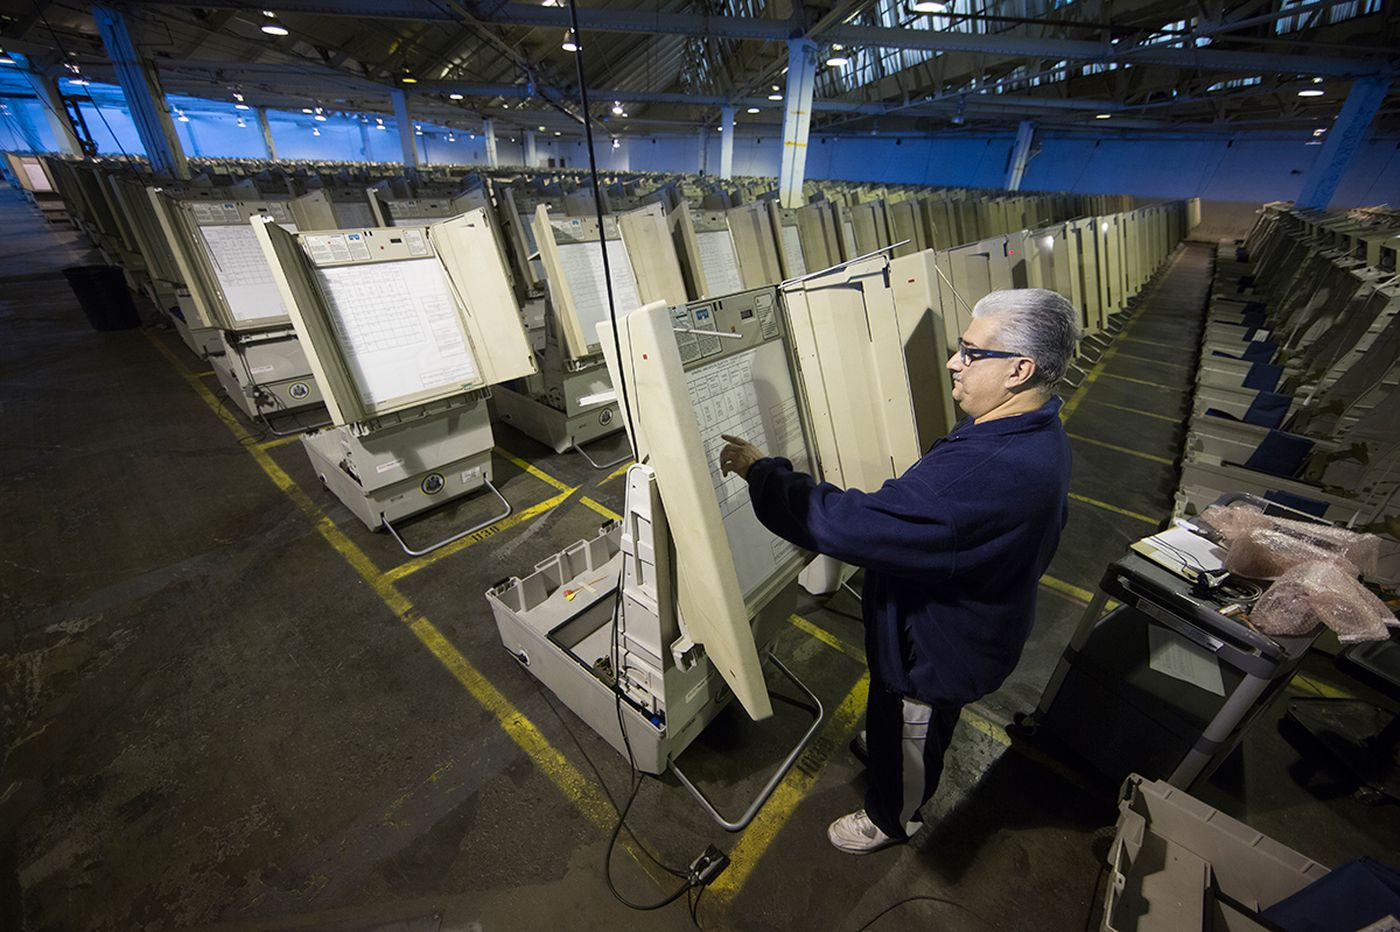 Pa. lawmaker questions governor's drive for new voting machines